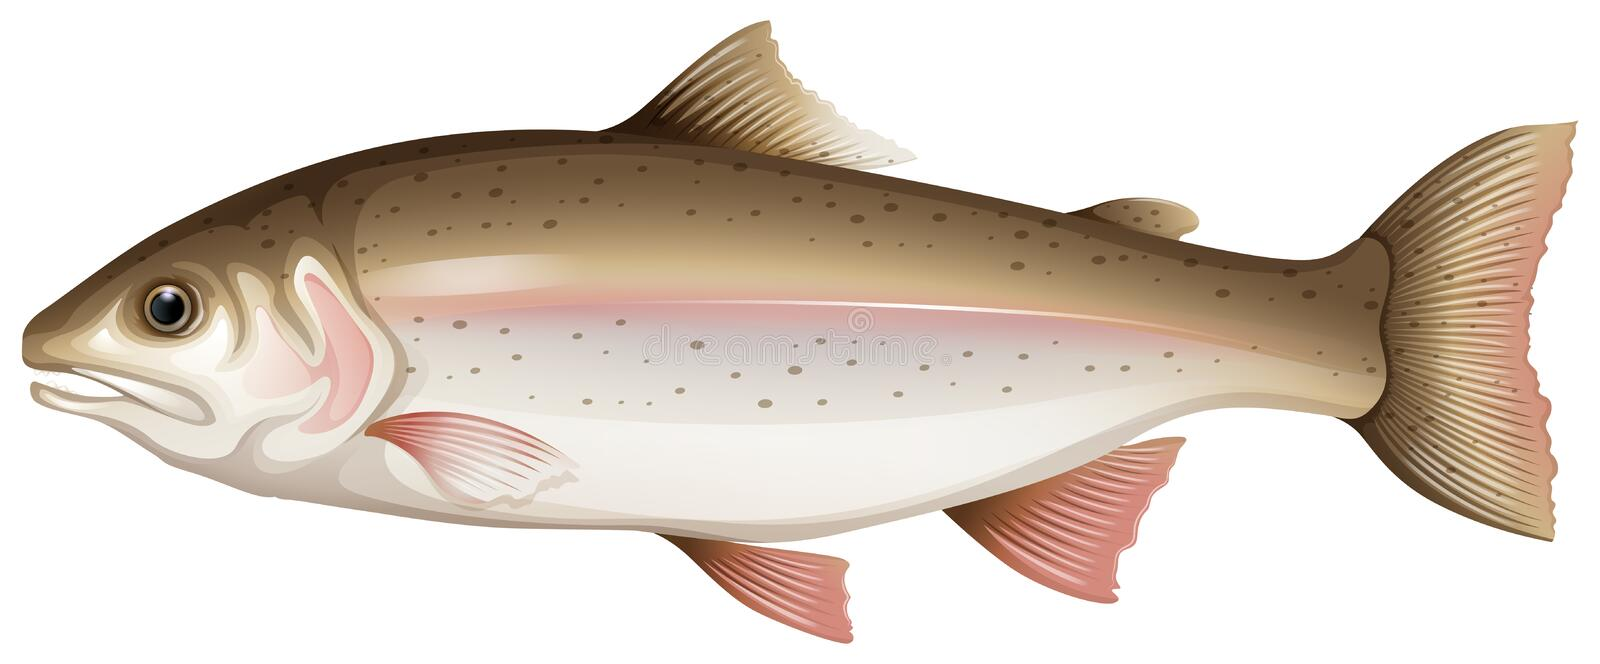 Trout. Illustration in fine detail royalty free illustration